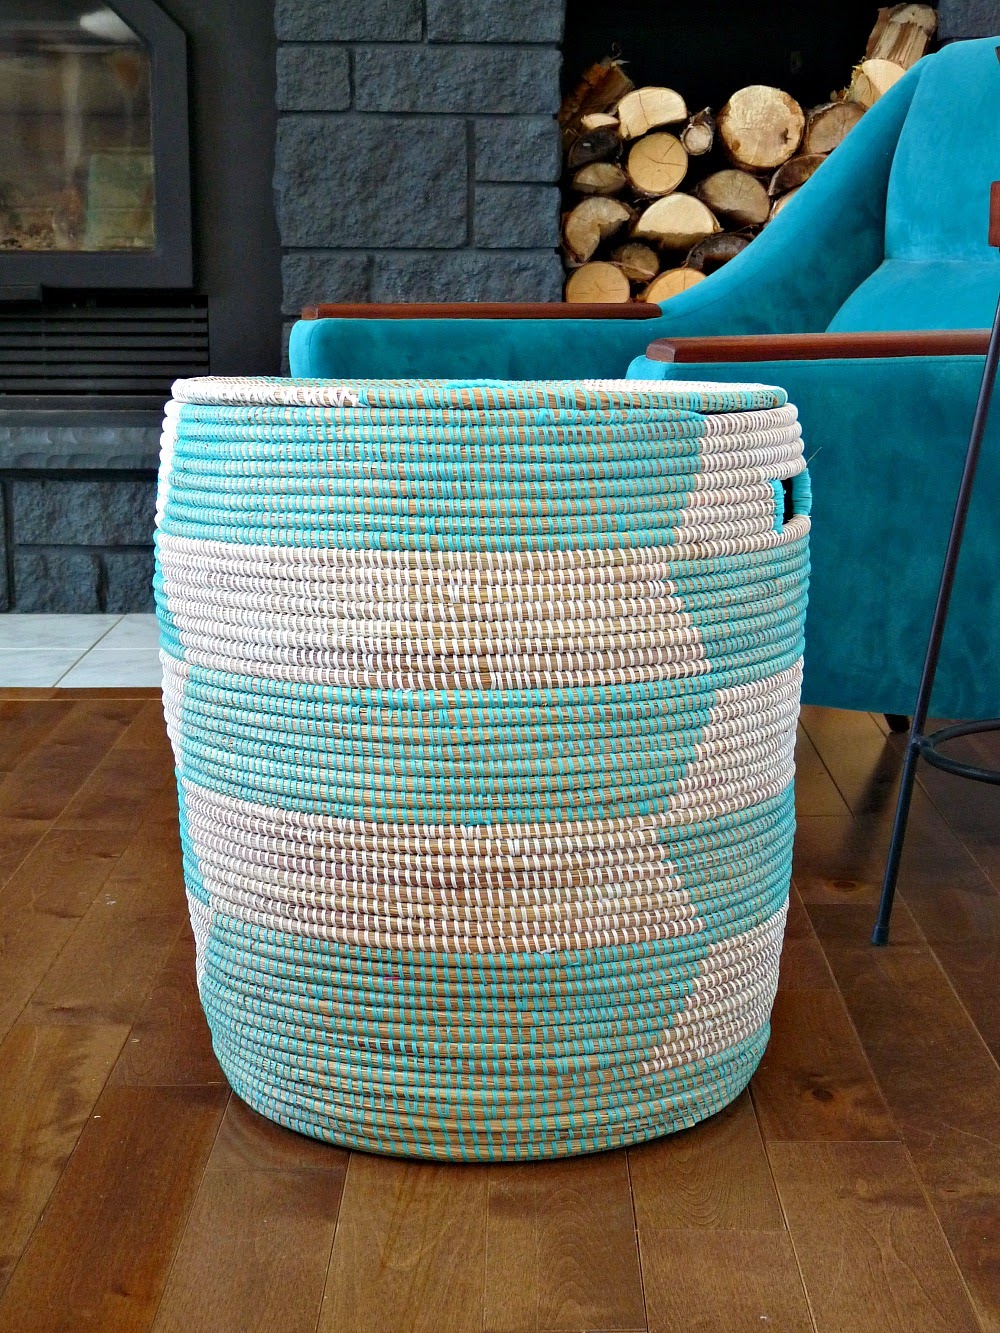 Uncommon Goods Review - Turquoise Woven Storage Bin